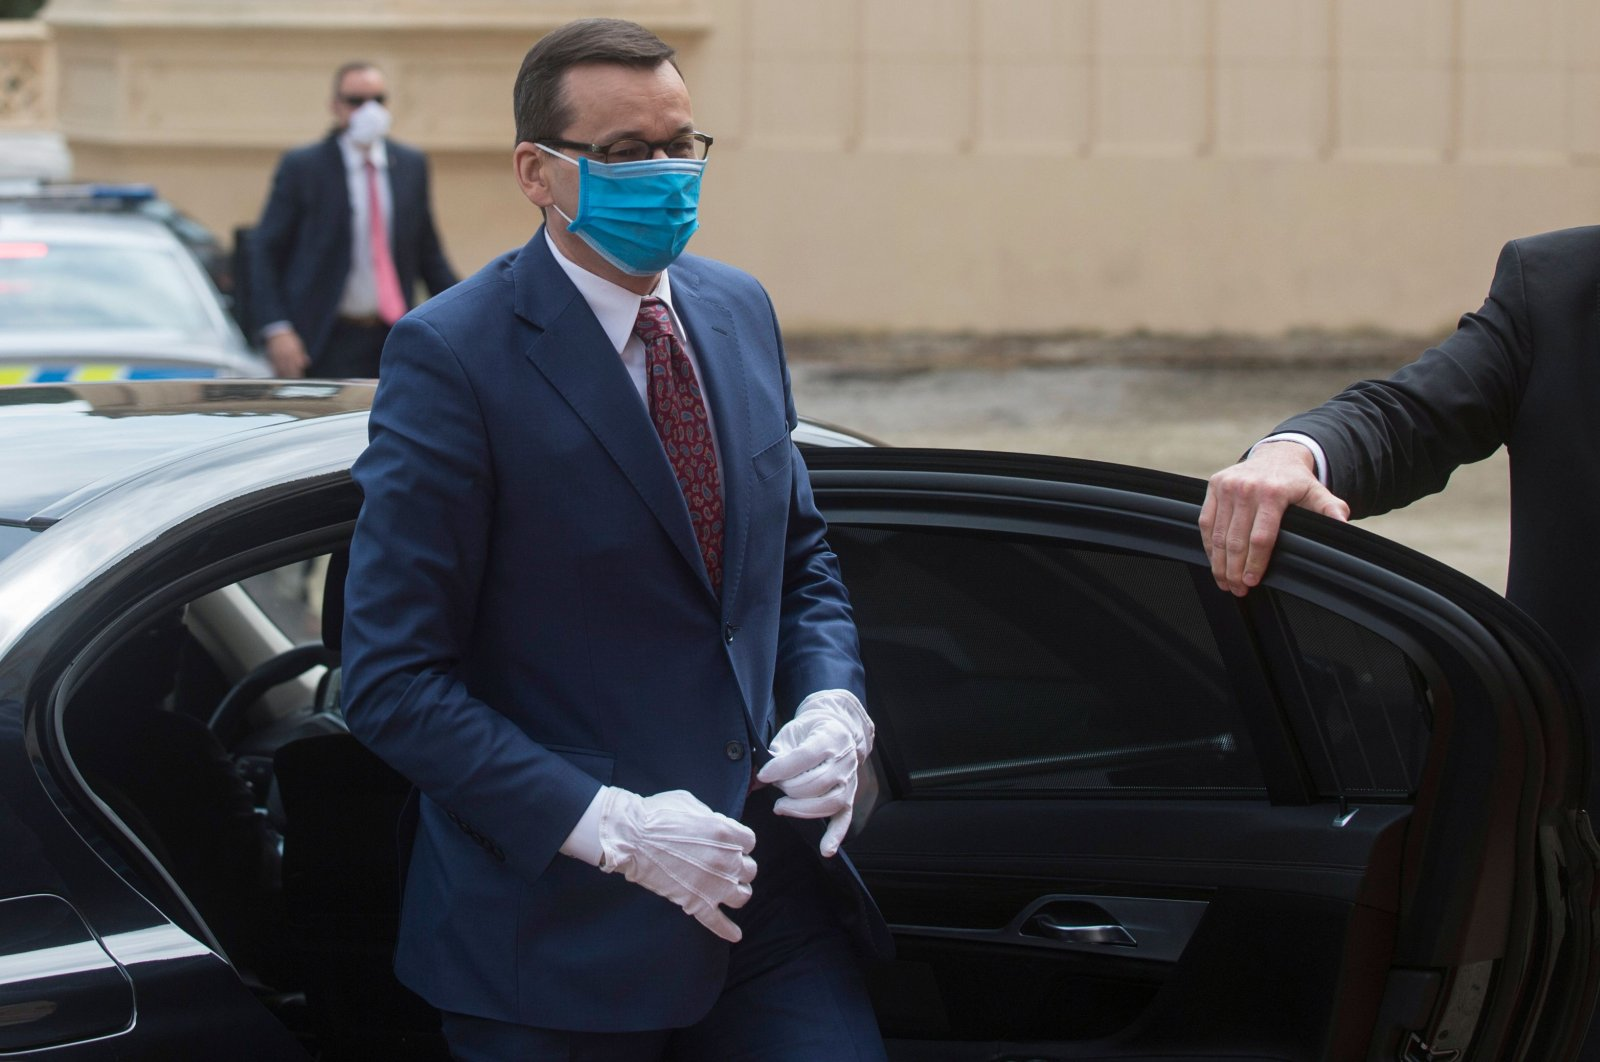 Poland's Prime Minister Mateusz Morawiecki, wearing gloves and a face mask, arrives for the Visegrad Group (V4) meeting on June 11, 2020 in Chateau Lednice, Czech Republic. (AFP Photo)